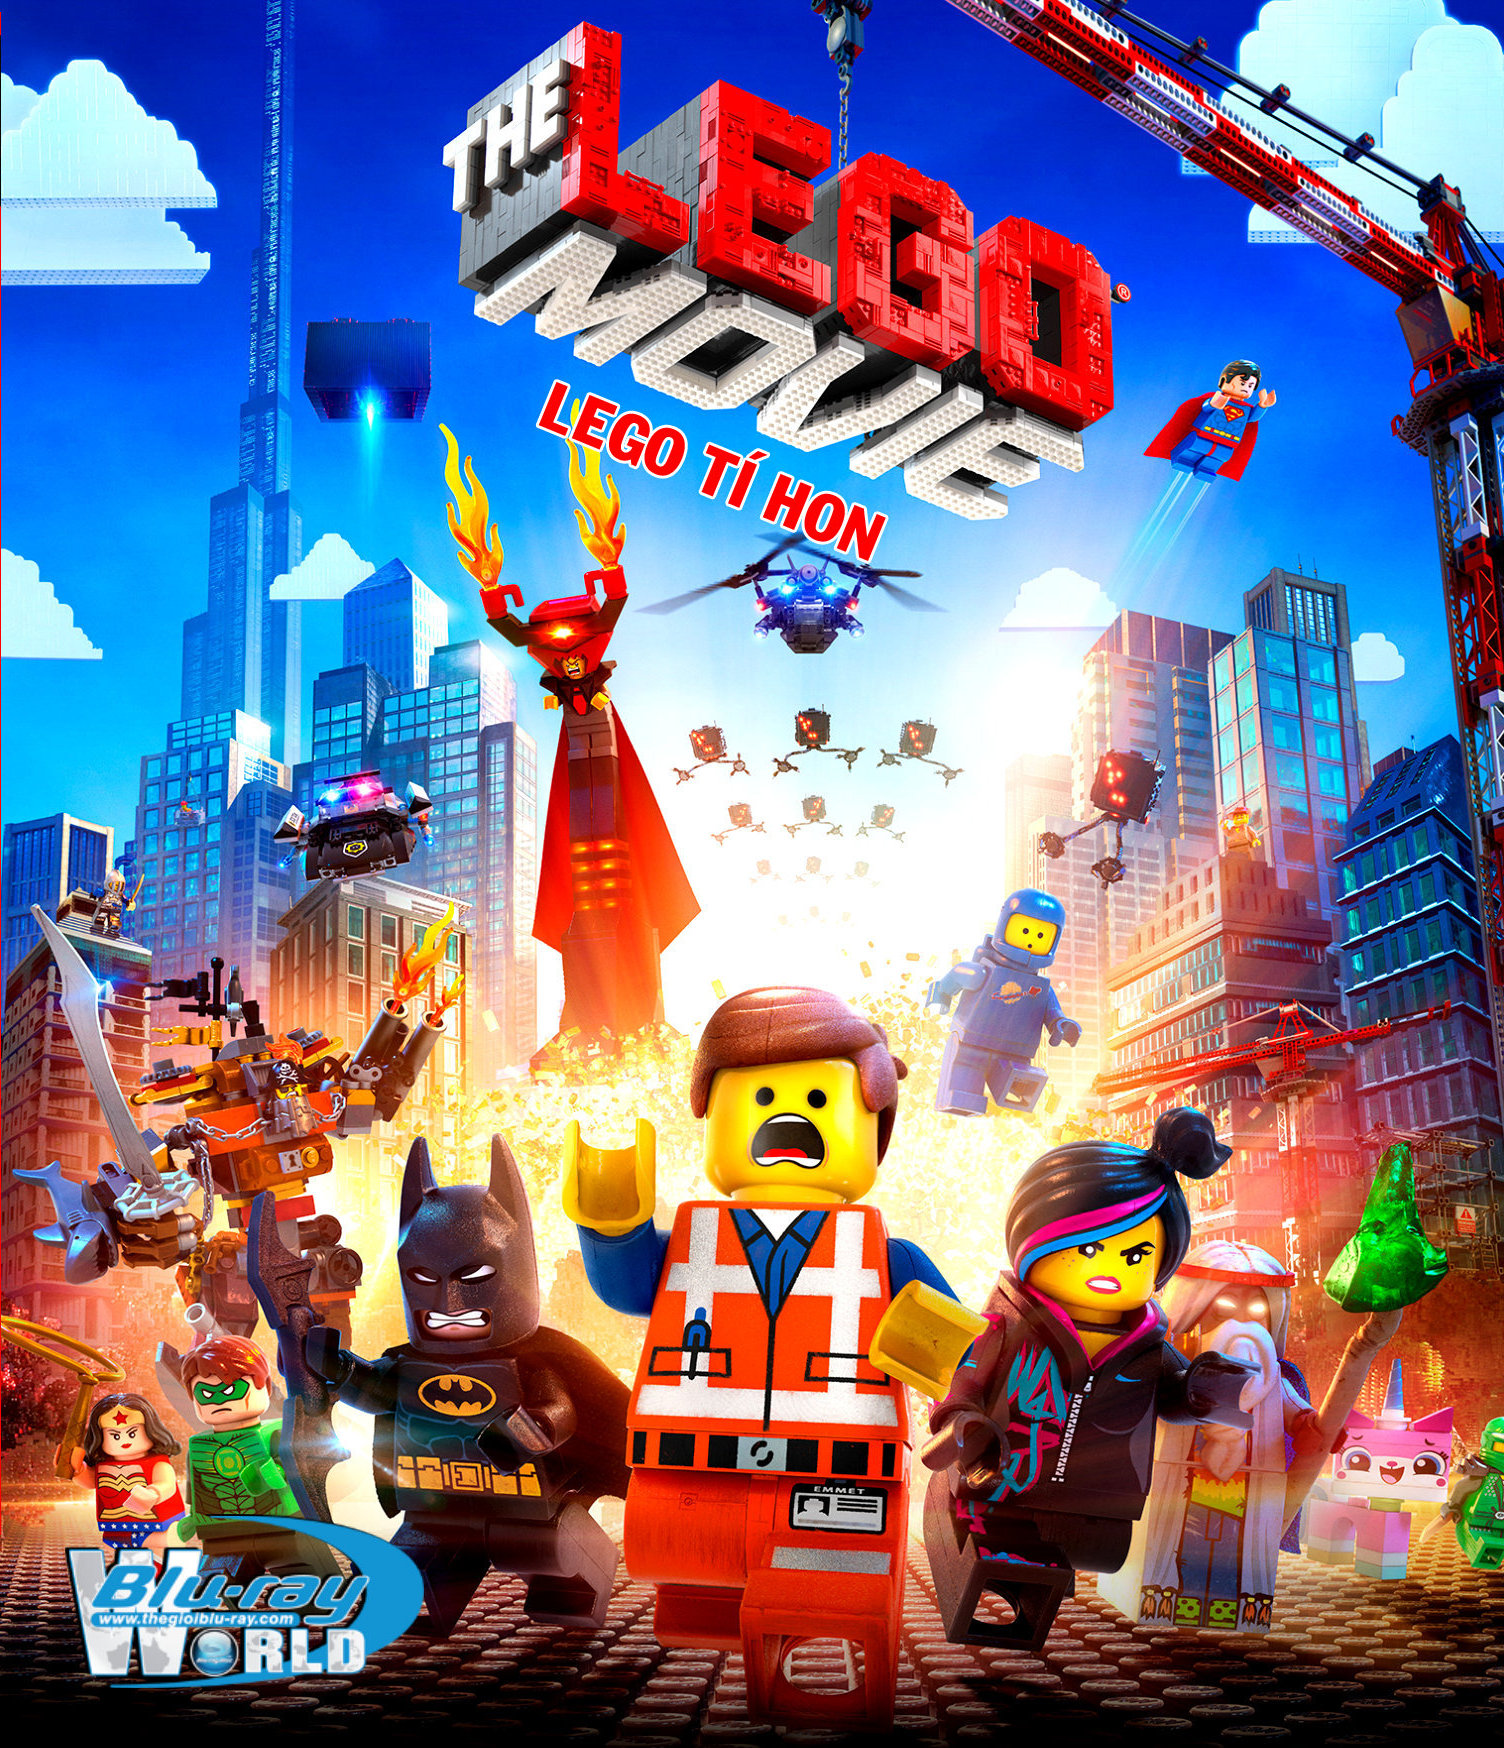 HD0199 - The Lego Movie 2014 - Lego tí hon